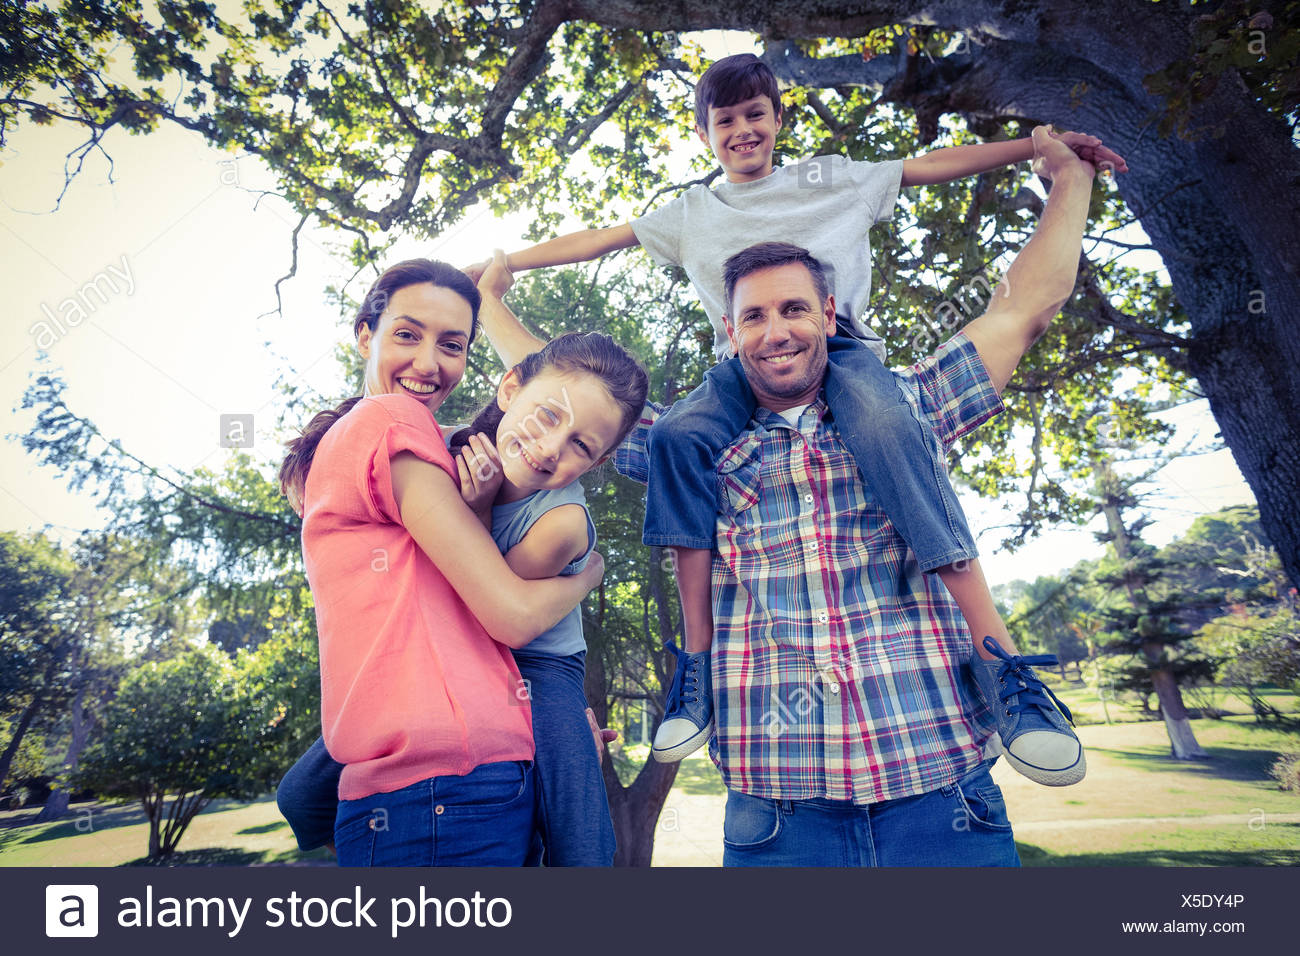 Happy family in the park together - Stock Image